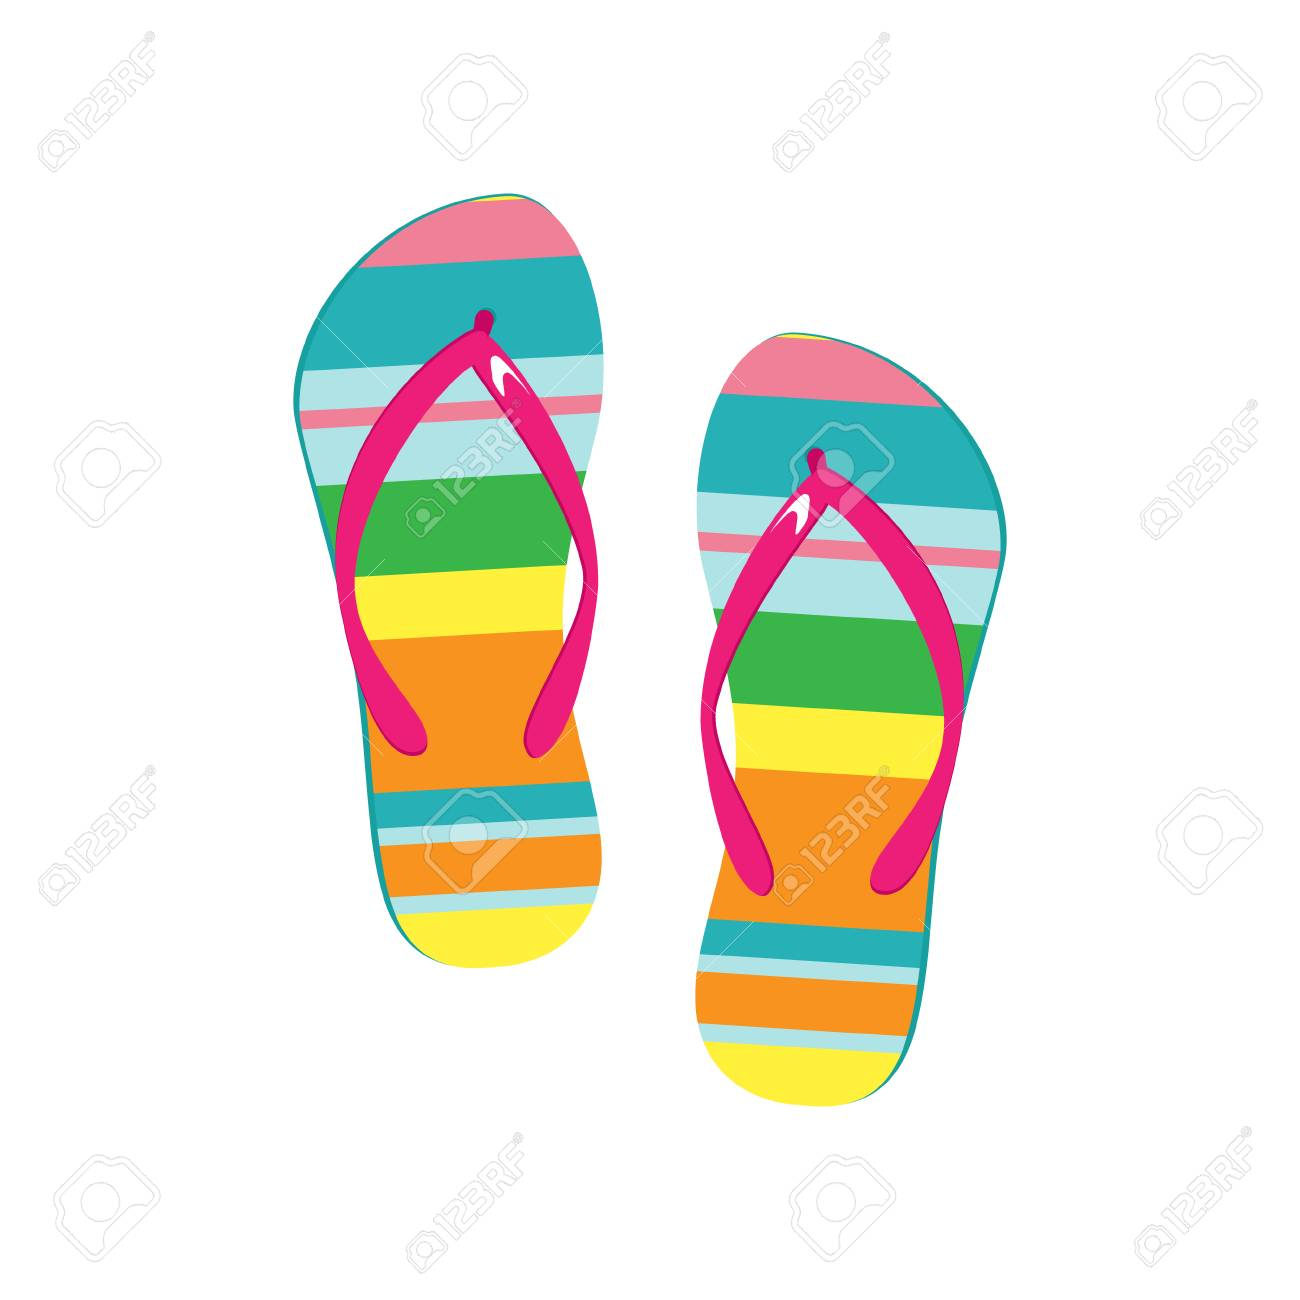 d0c0ff3705f Vector - Vector illustration pair of colorful flip flops. Beach slippers  icon